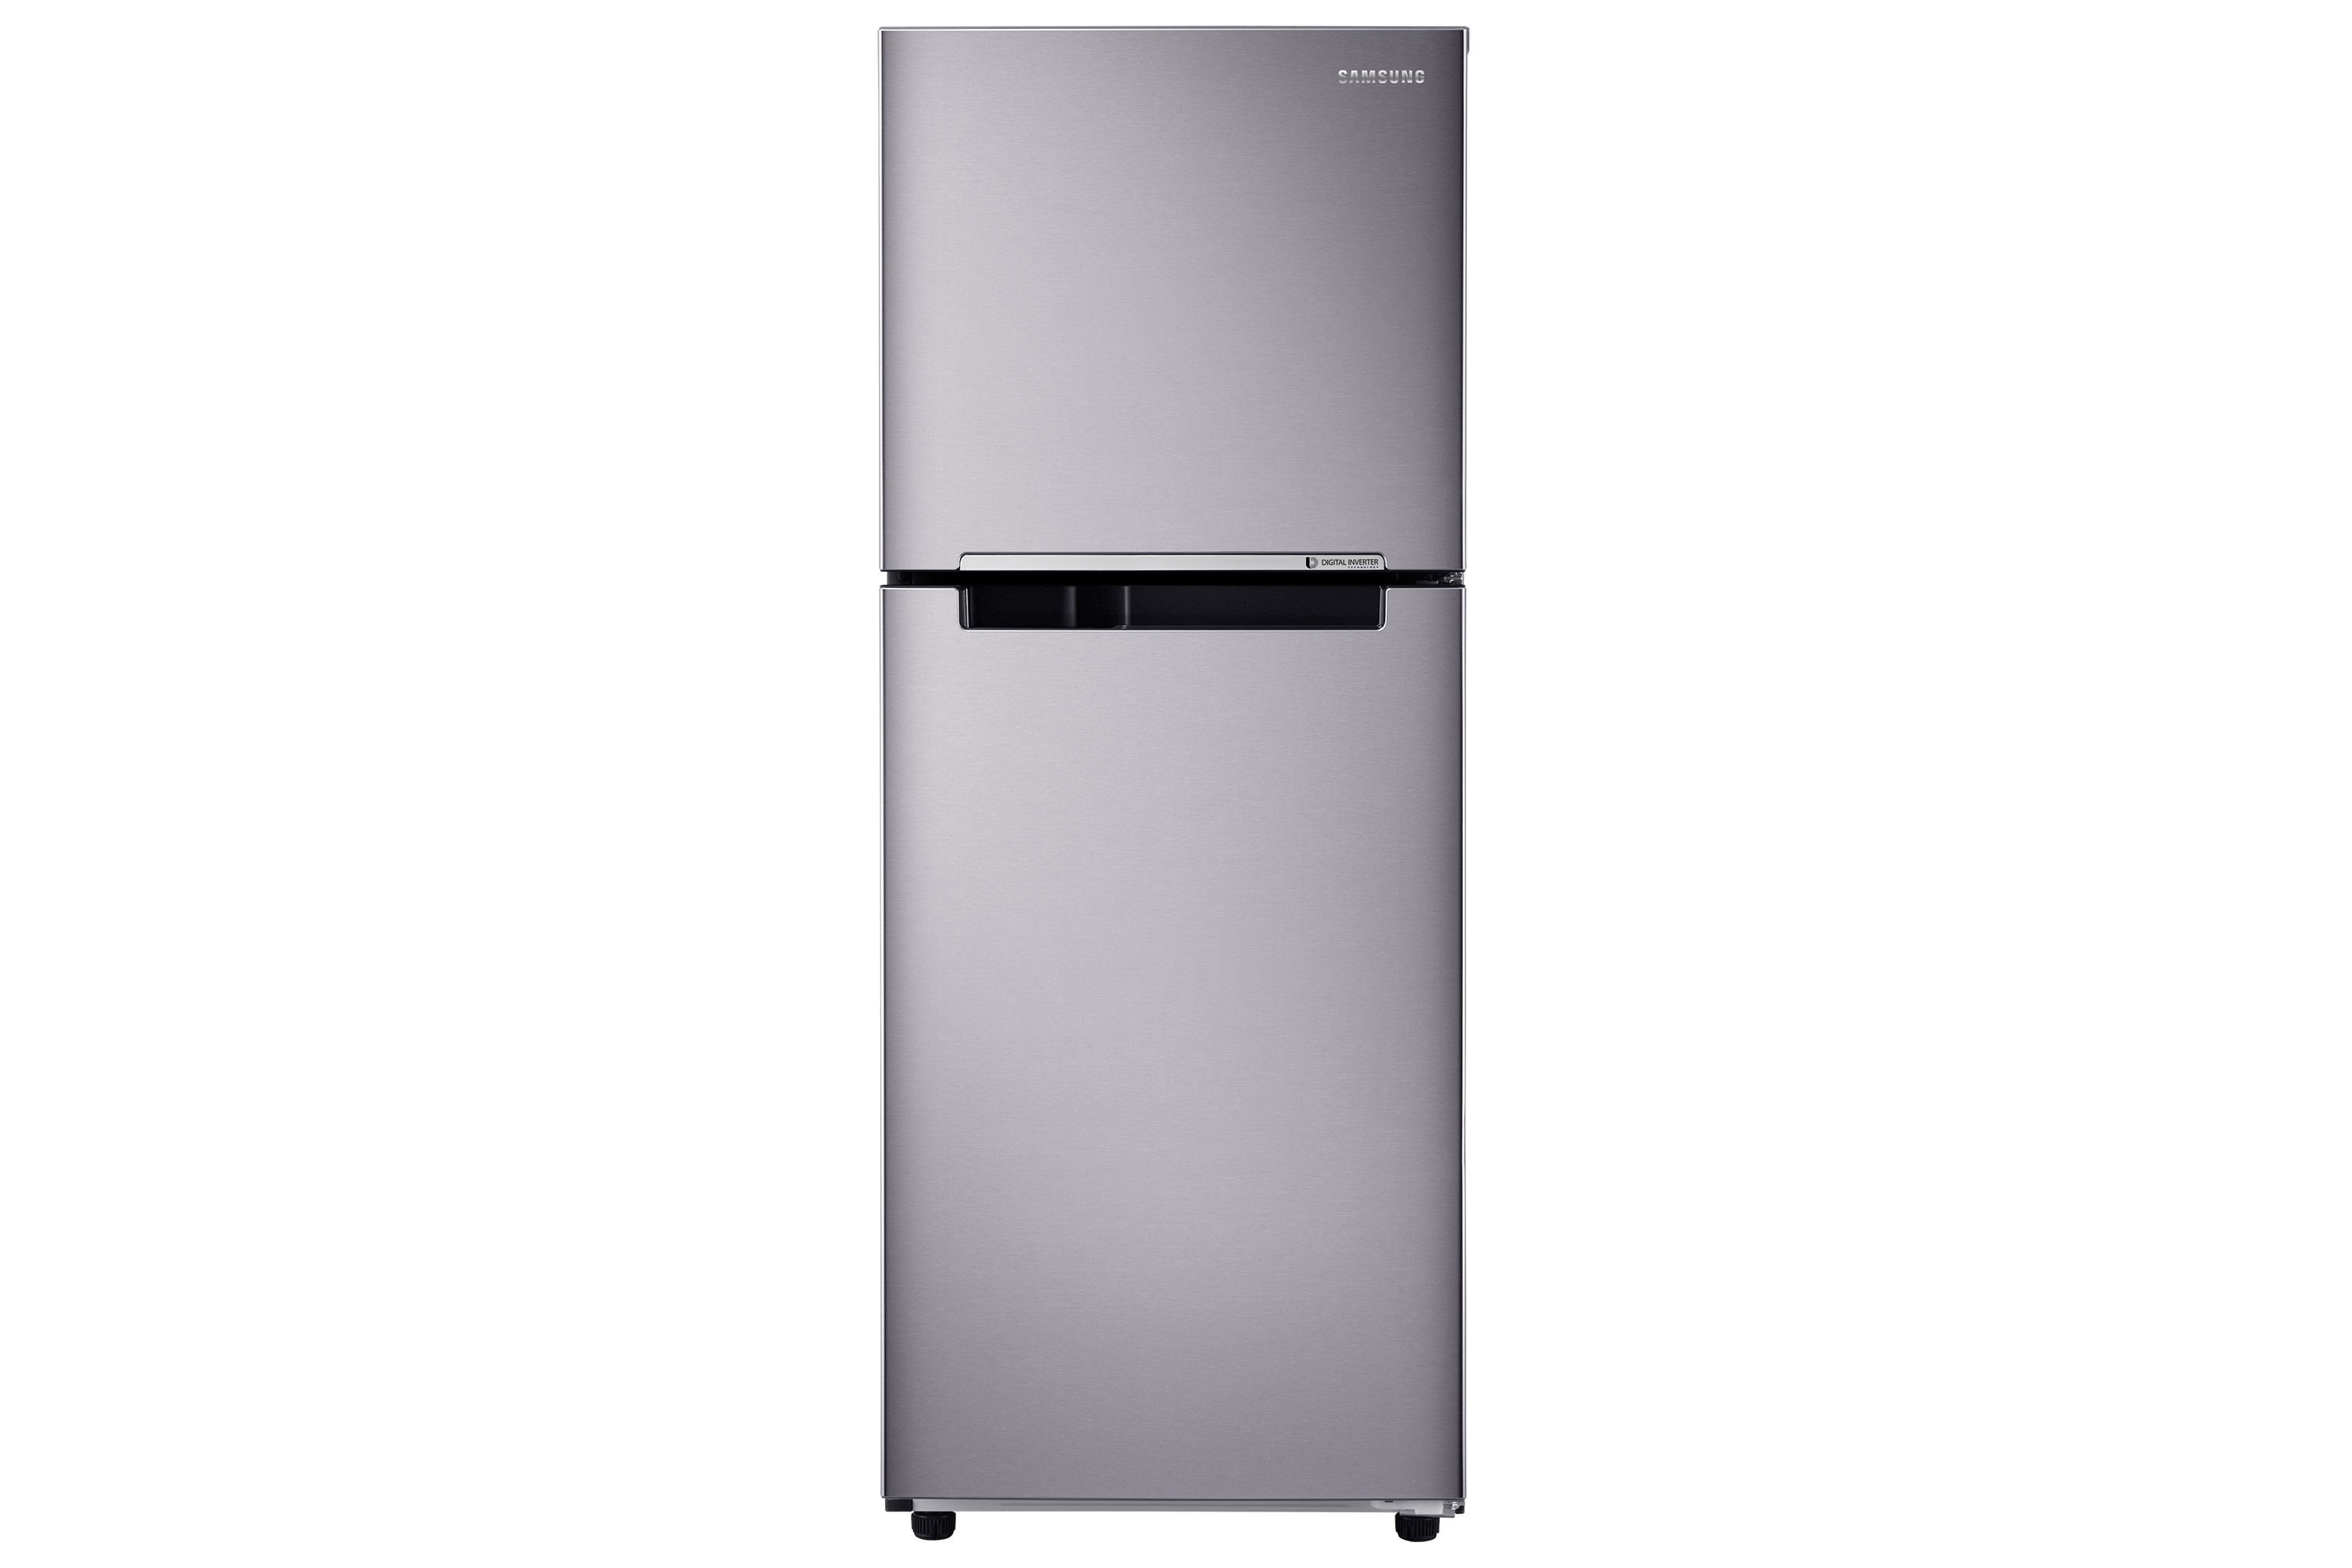 RT20HAR3DSA 2 door Refrigerator 203L SA (Metal Graphite